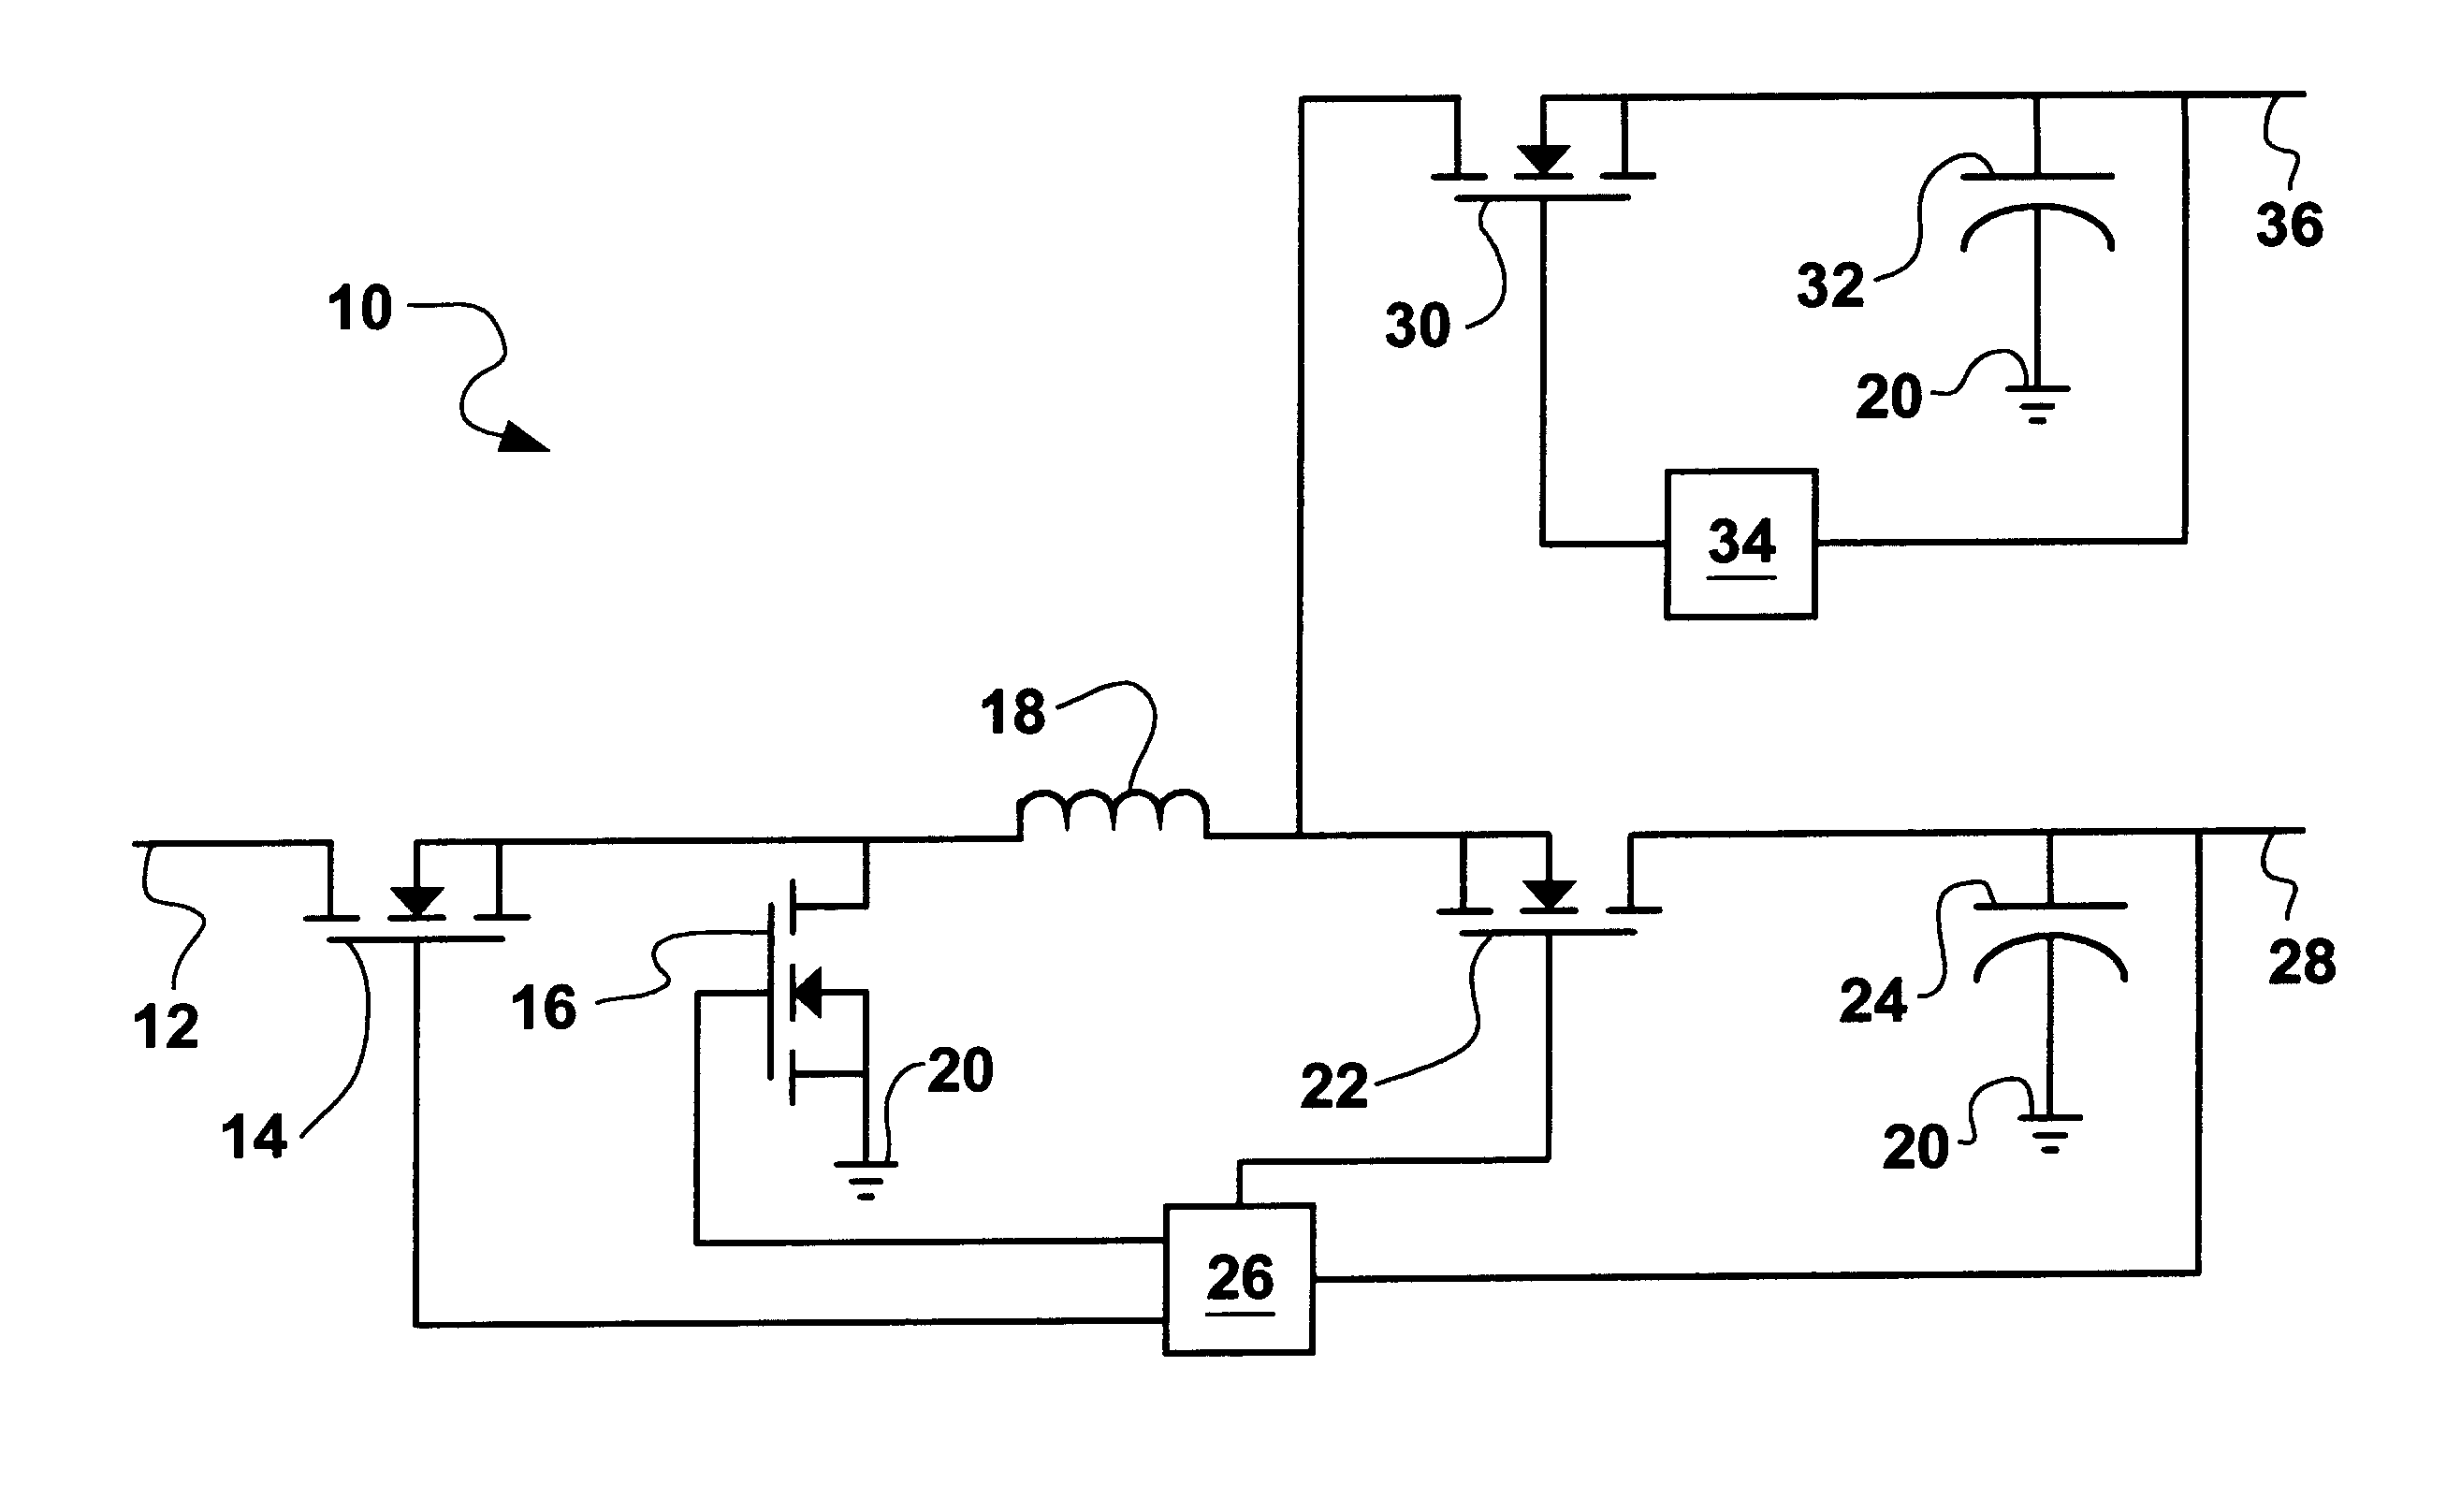 Analytics For Us Patent No 6222352 Multiple Voltage Output Buck Inductor In A Circuit Low Cost Converter Is Provided Using Single Pulse Width Modulator Integrated And Two Mosfets Plus One